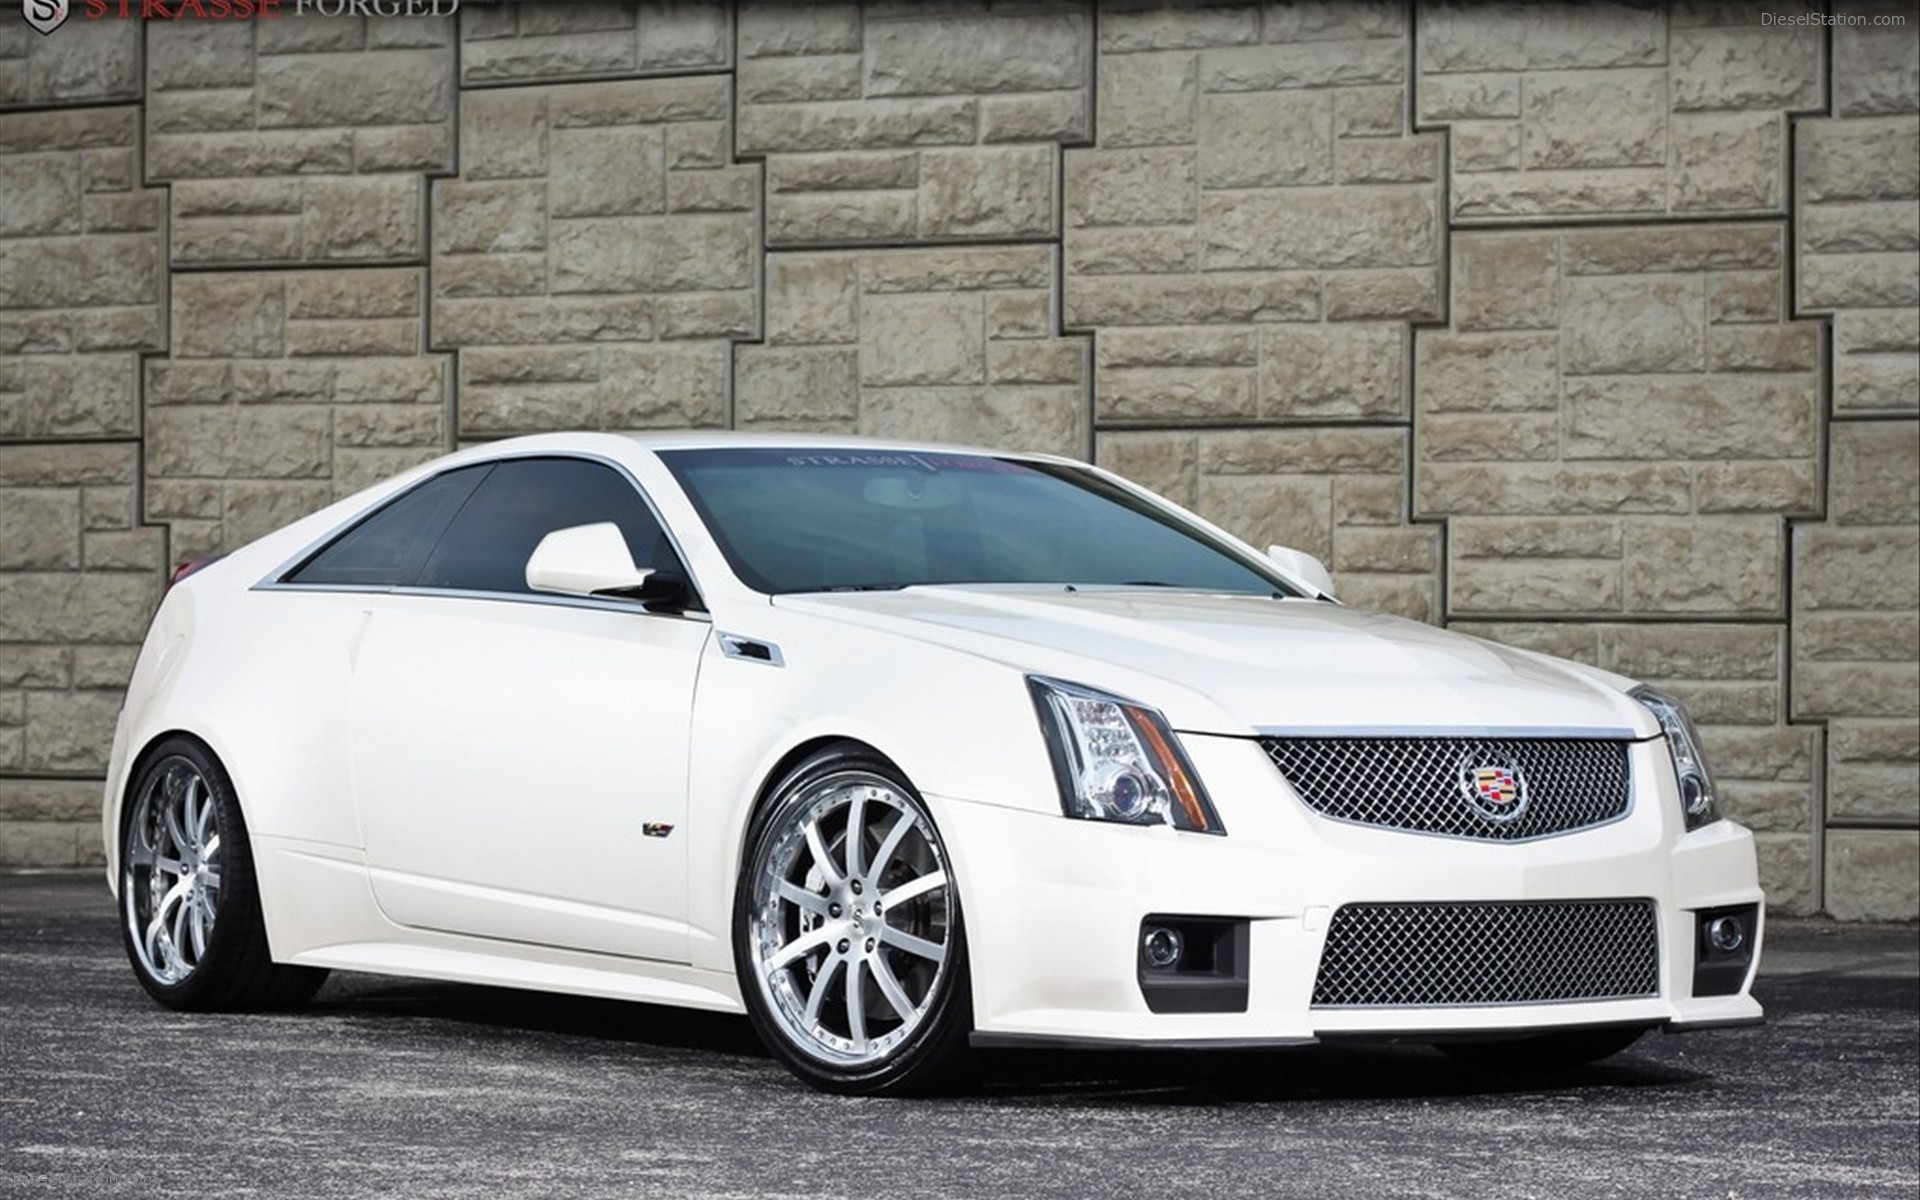 2012 Cadillac Cts-v Coupe Photos, Informations, Articles ...